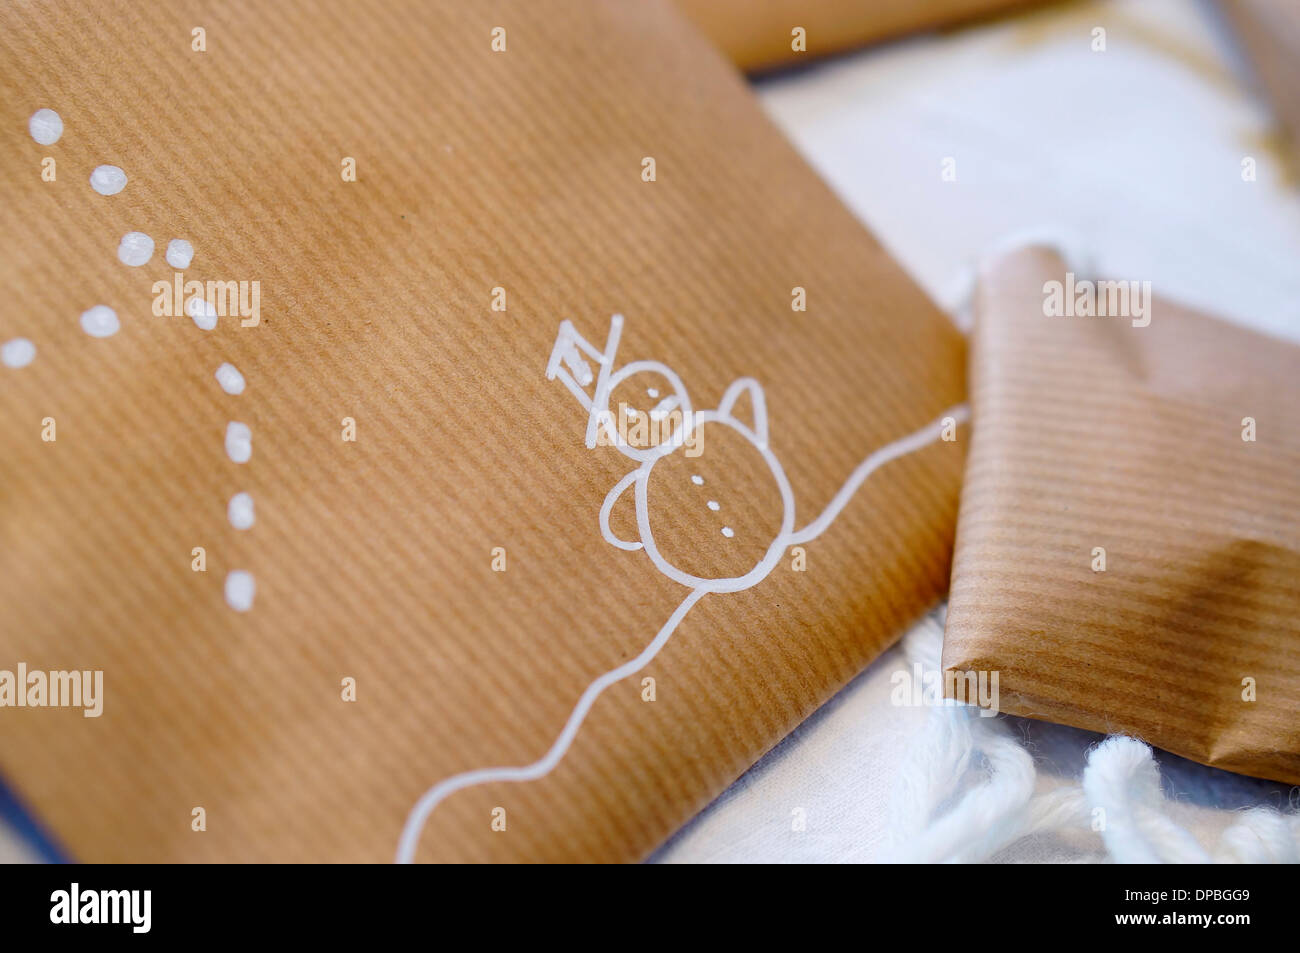 Detail of Individual made Advent calendar - Stock Image